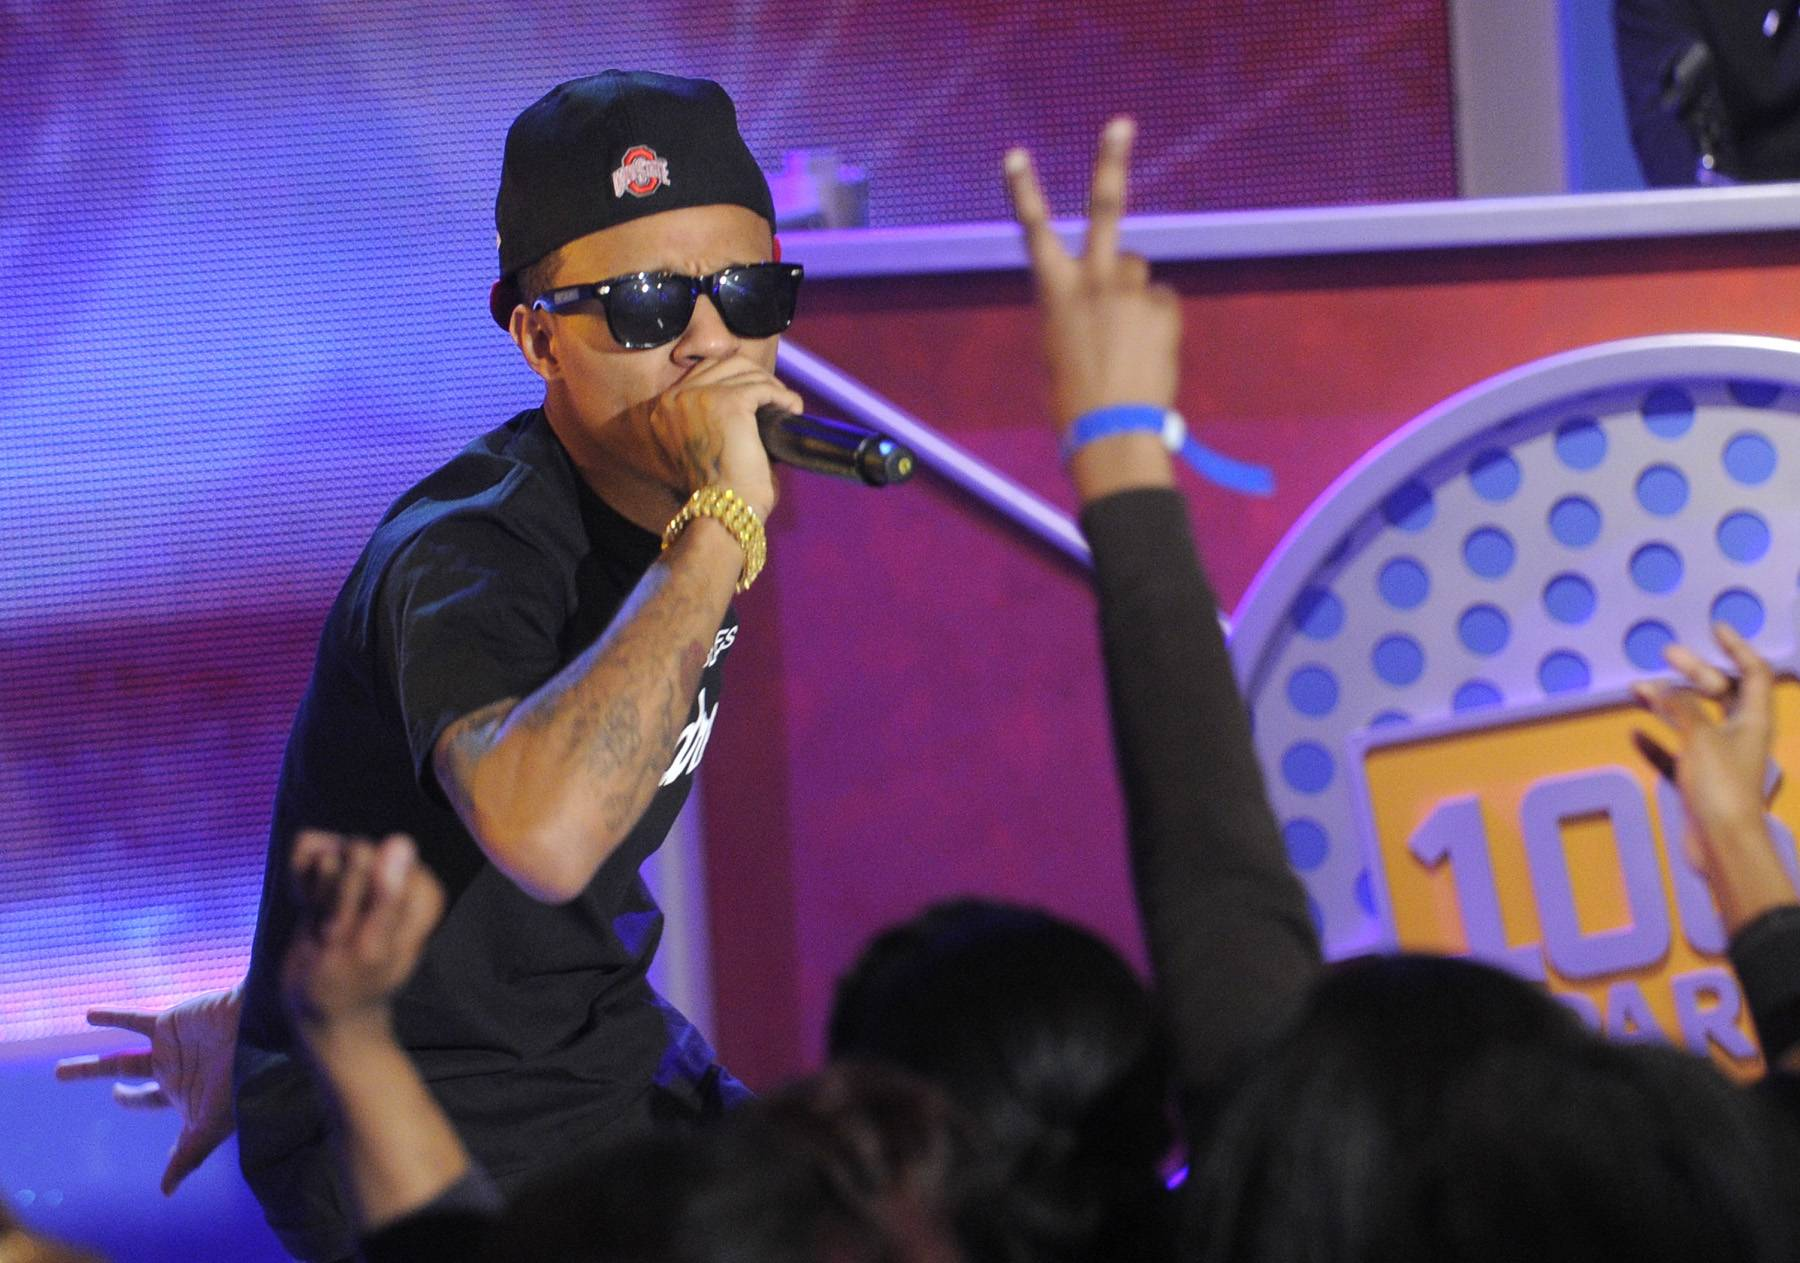 Get Low - Bow Wow performs at 106 & Park, January 23, 2012. (Photo: John Ricard / BET)